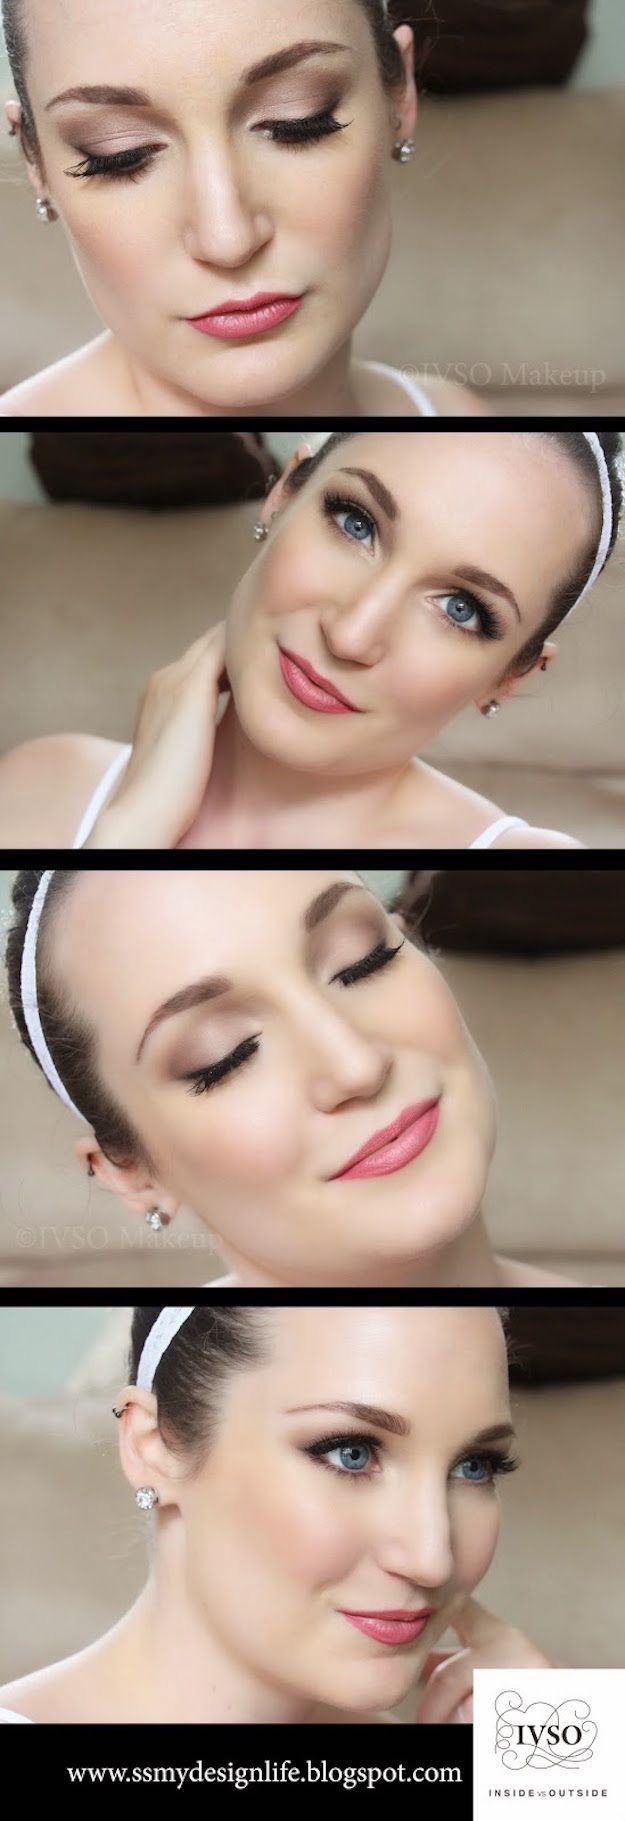 Wedding Makeup Ideas for Brides - Easy Breezy Bridal - Romantic make up ideas for the wedding - Natural and Airbrush techniques that look great with blue, green and brown eyes - rusti evening glow looks - https://www.thegoddess.com/wedding-makeup-for-brides